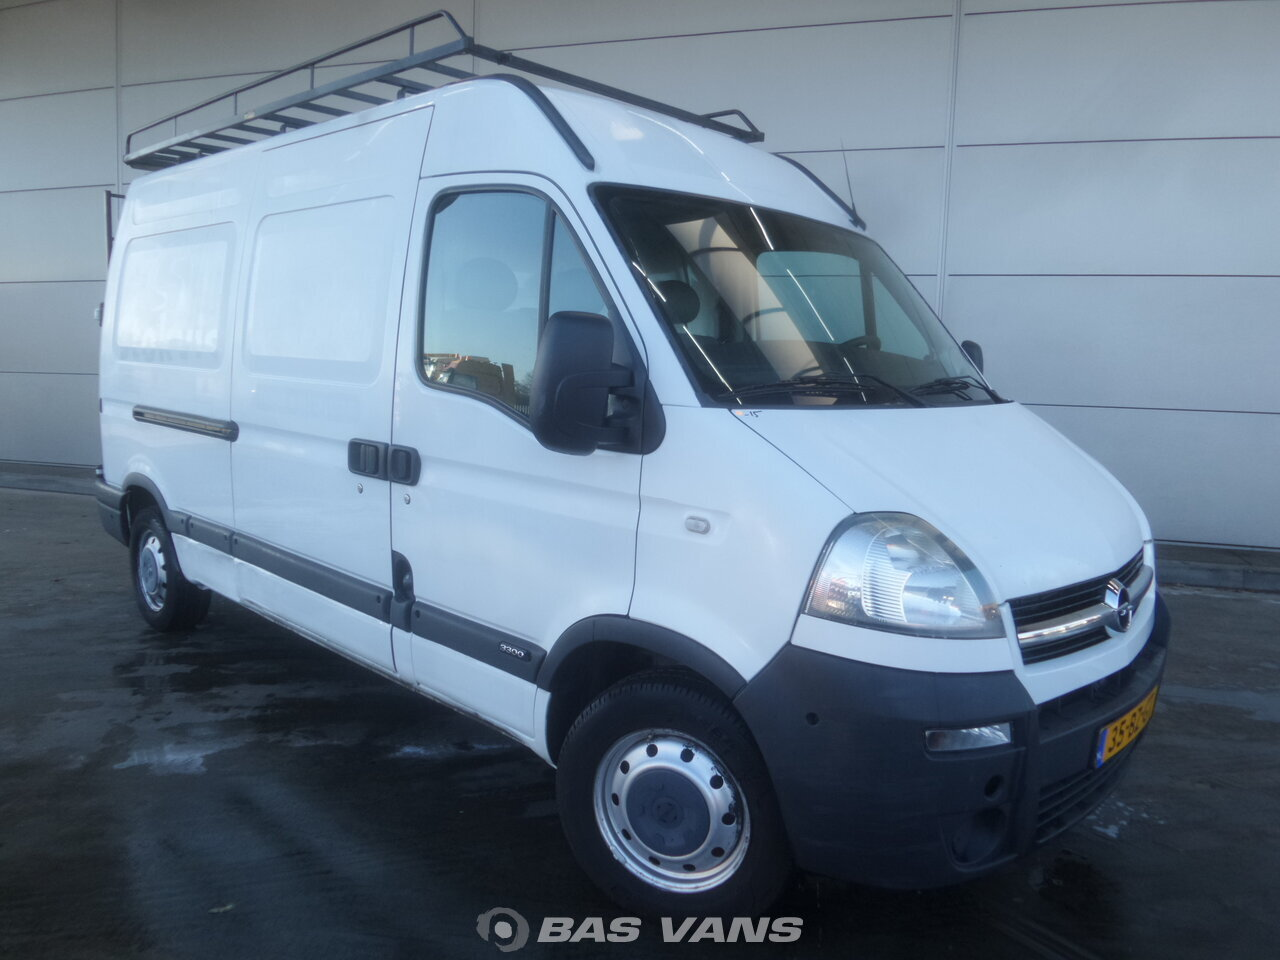 opel movano 2.5 cdti 2006 closed van light commercial